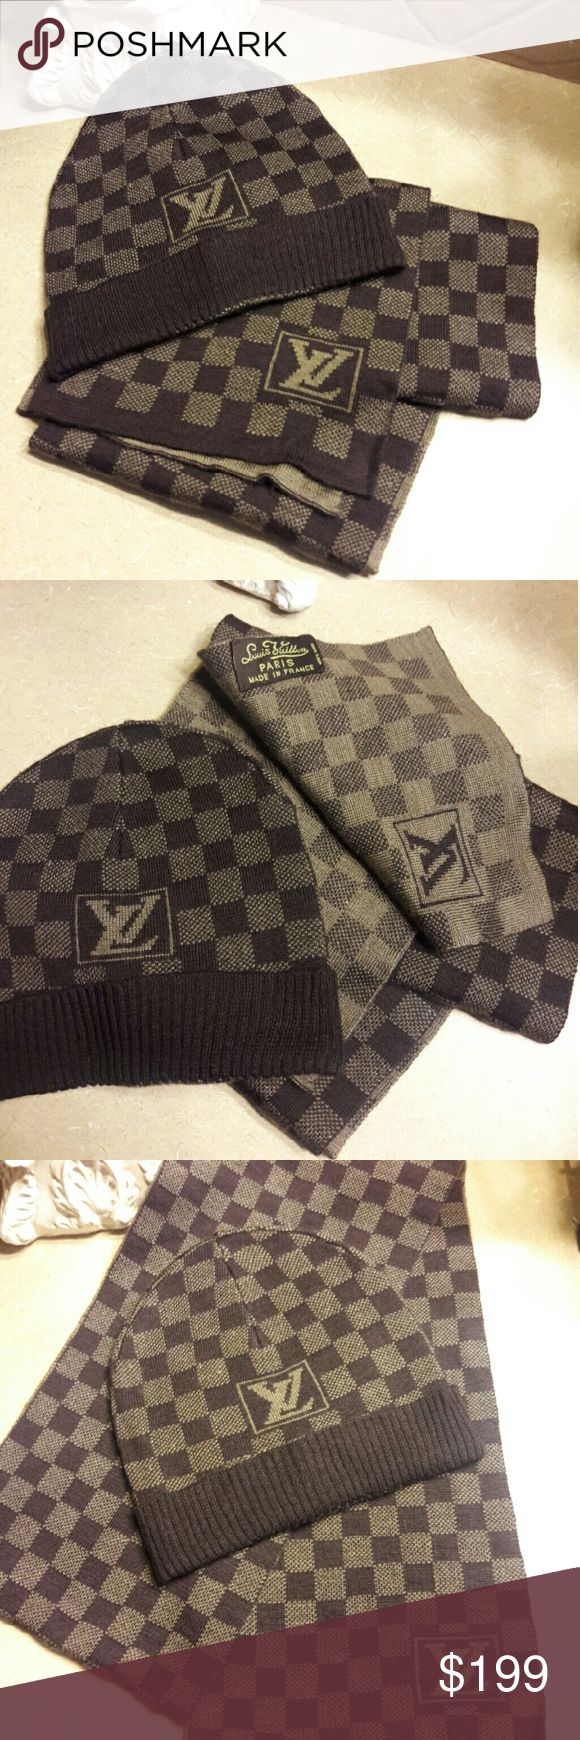 LV Scarf and Beanie LV Scarf and Beanie. Unisex. Not Auth.... Louis  Vuitton. Please ask any questions before buying. Louis Vuitton Accessories Scarves & Wraps